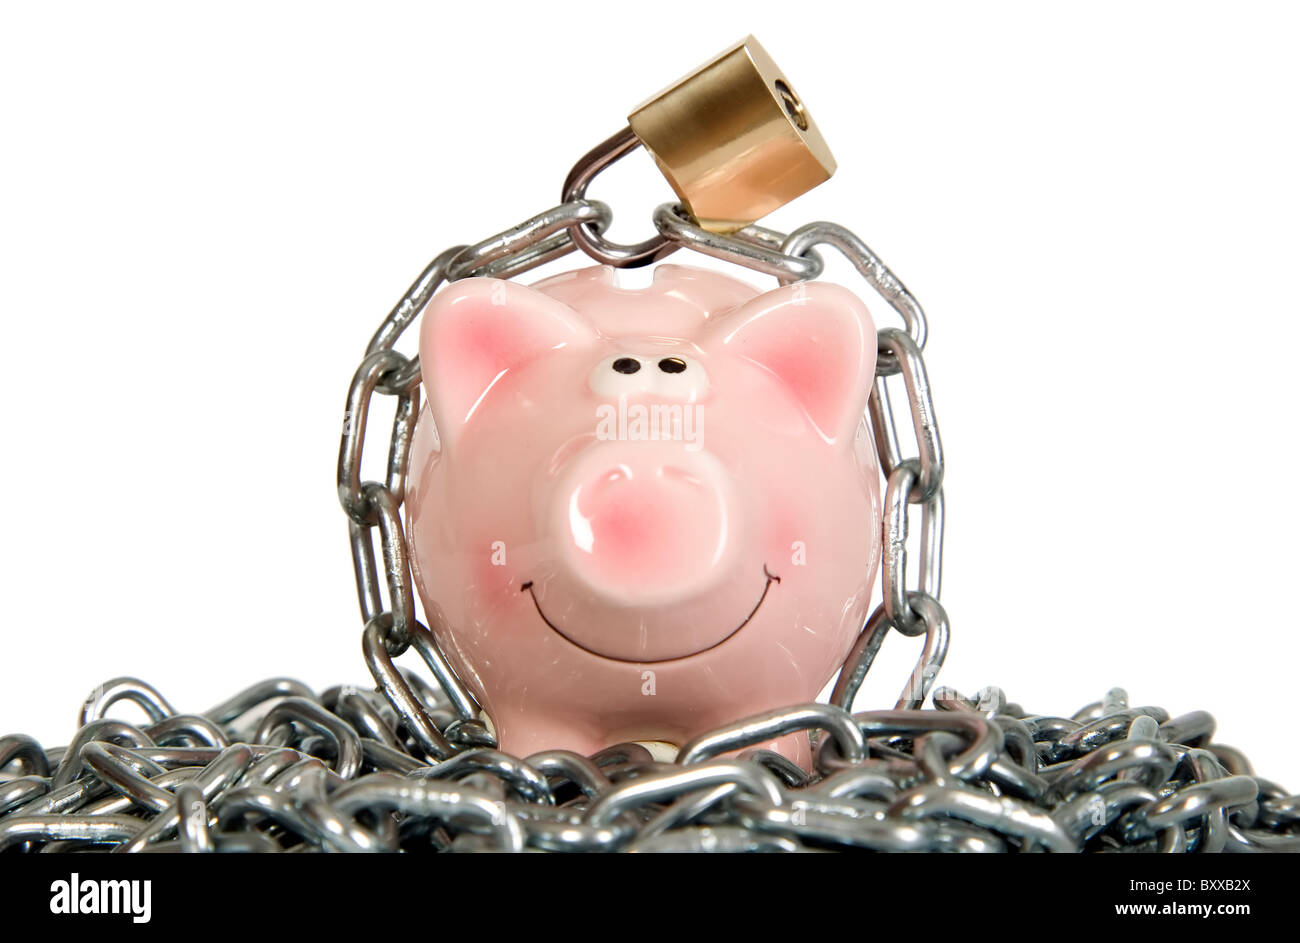 Saving pig is secured with metal chain and lock - Stock Image